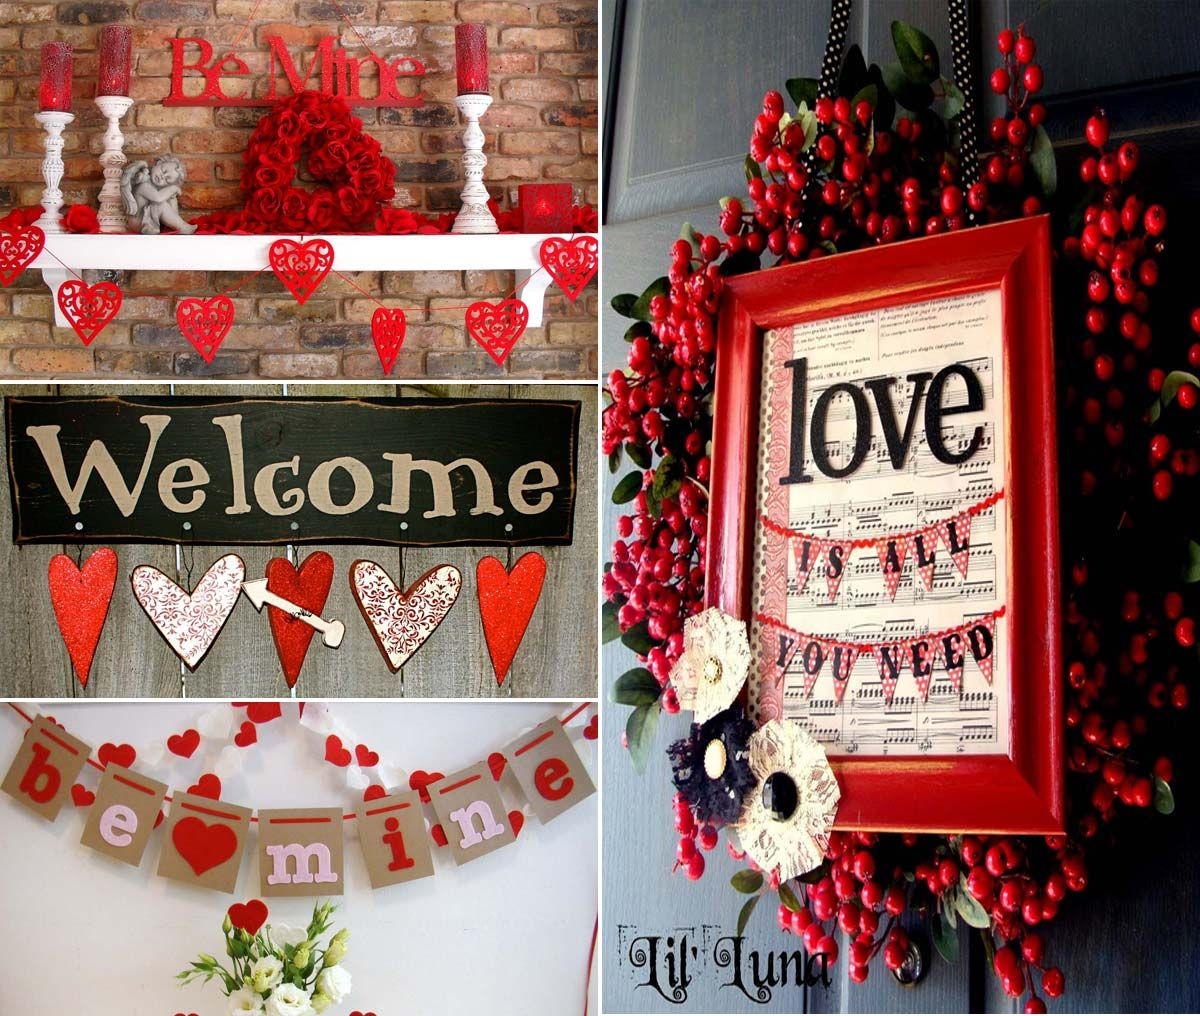 Valentine Home Decorations: Valentine's Day Decorations Ideas